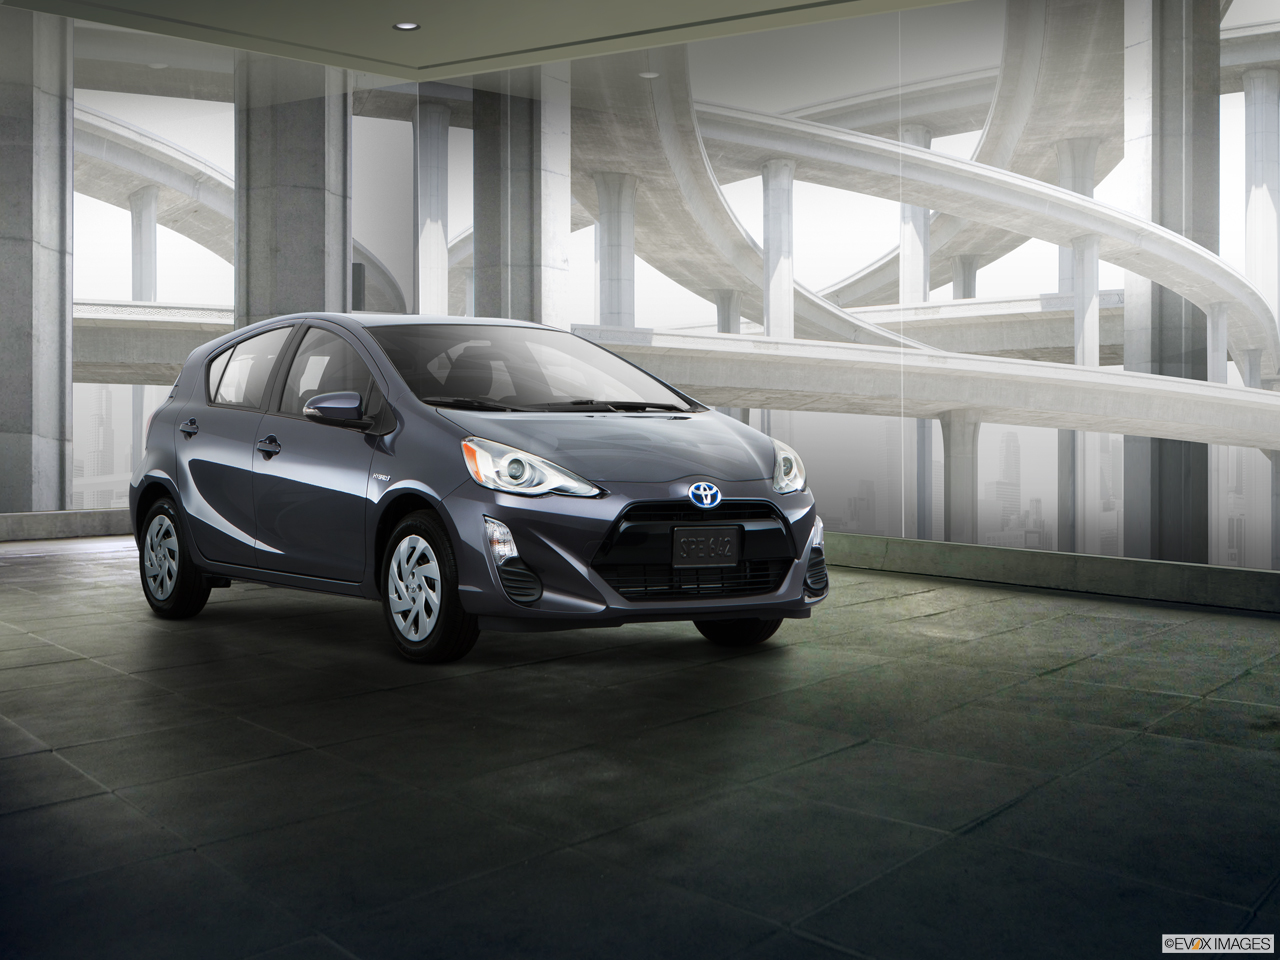 Exterior View Of 2016 Toyota Prius C in Tustin